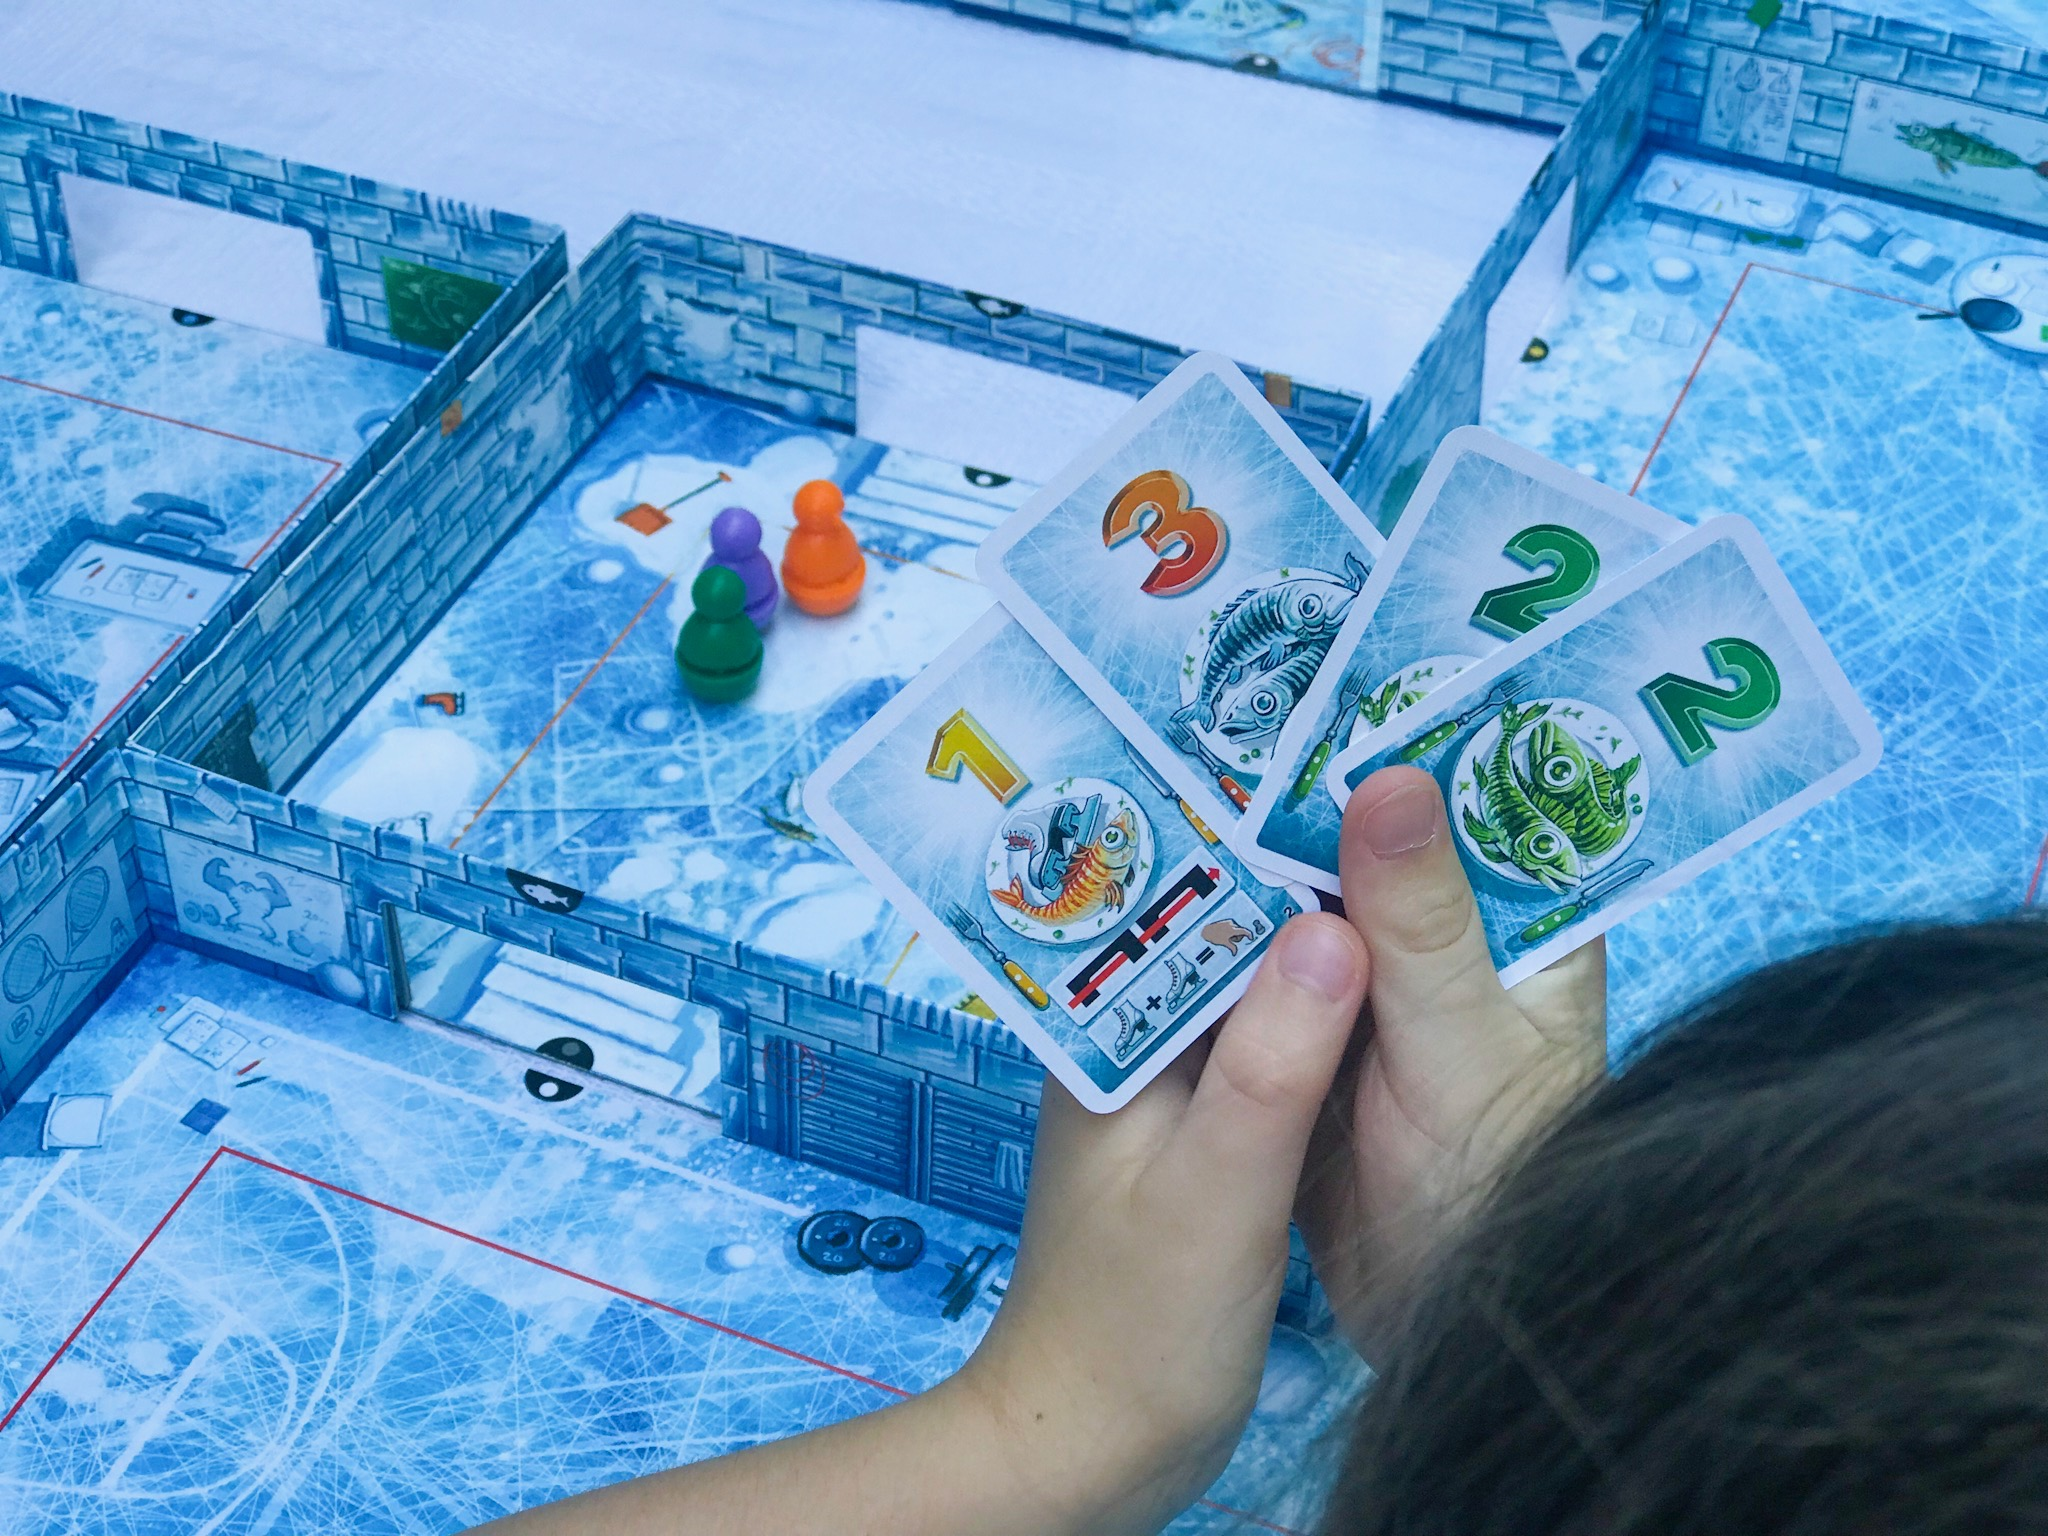 ICECOOL and ICECOOL2 family board game 9.jpeg